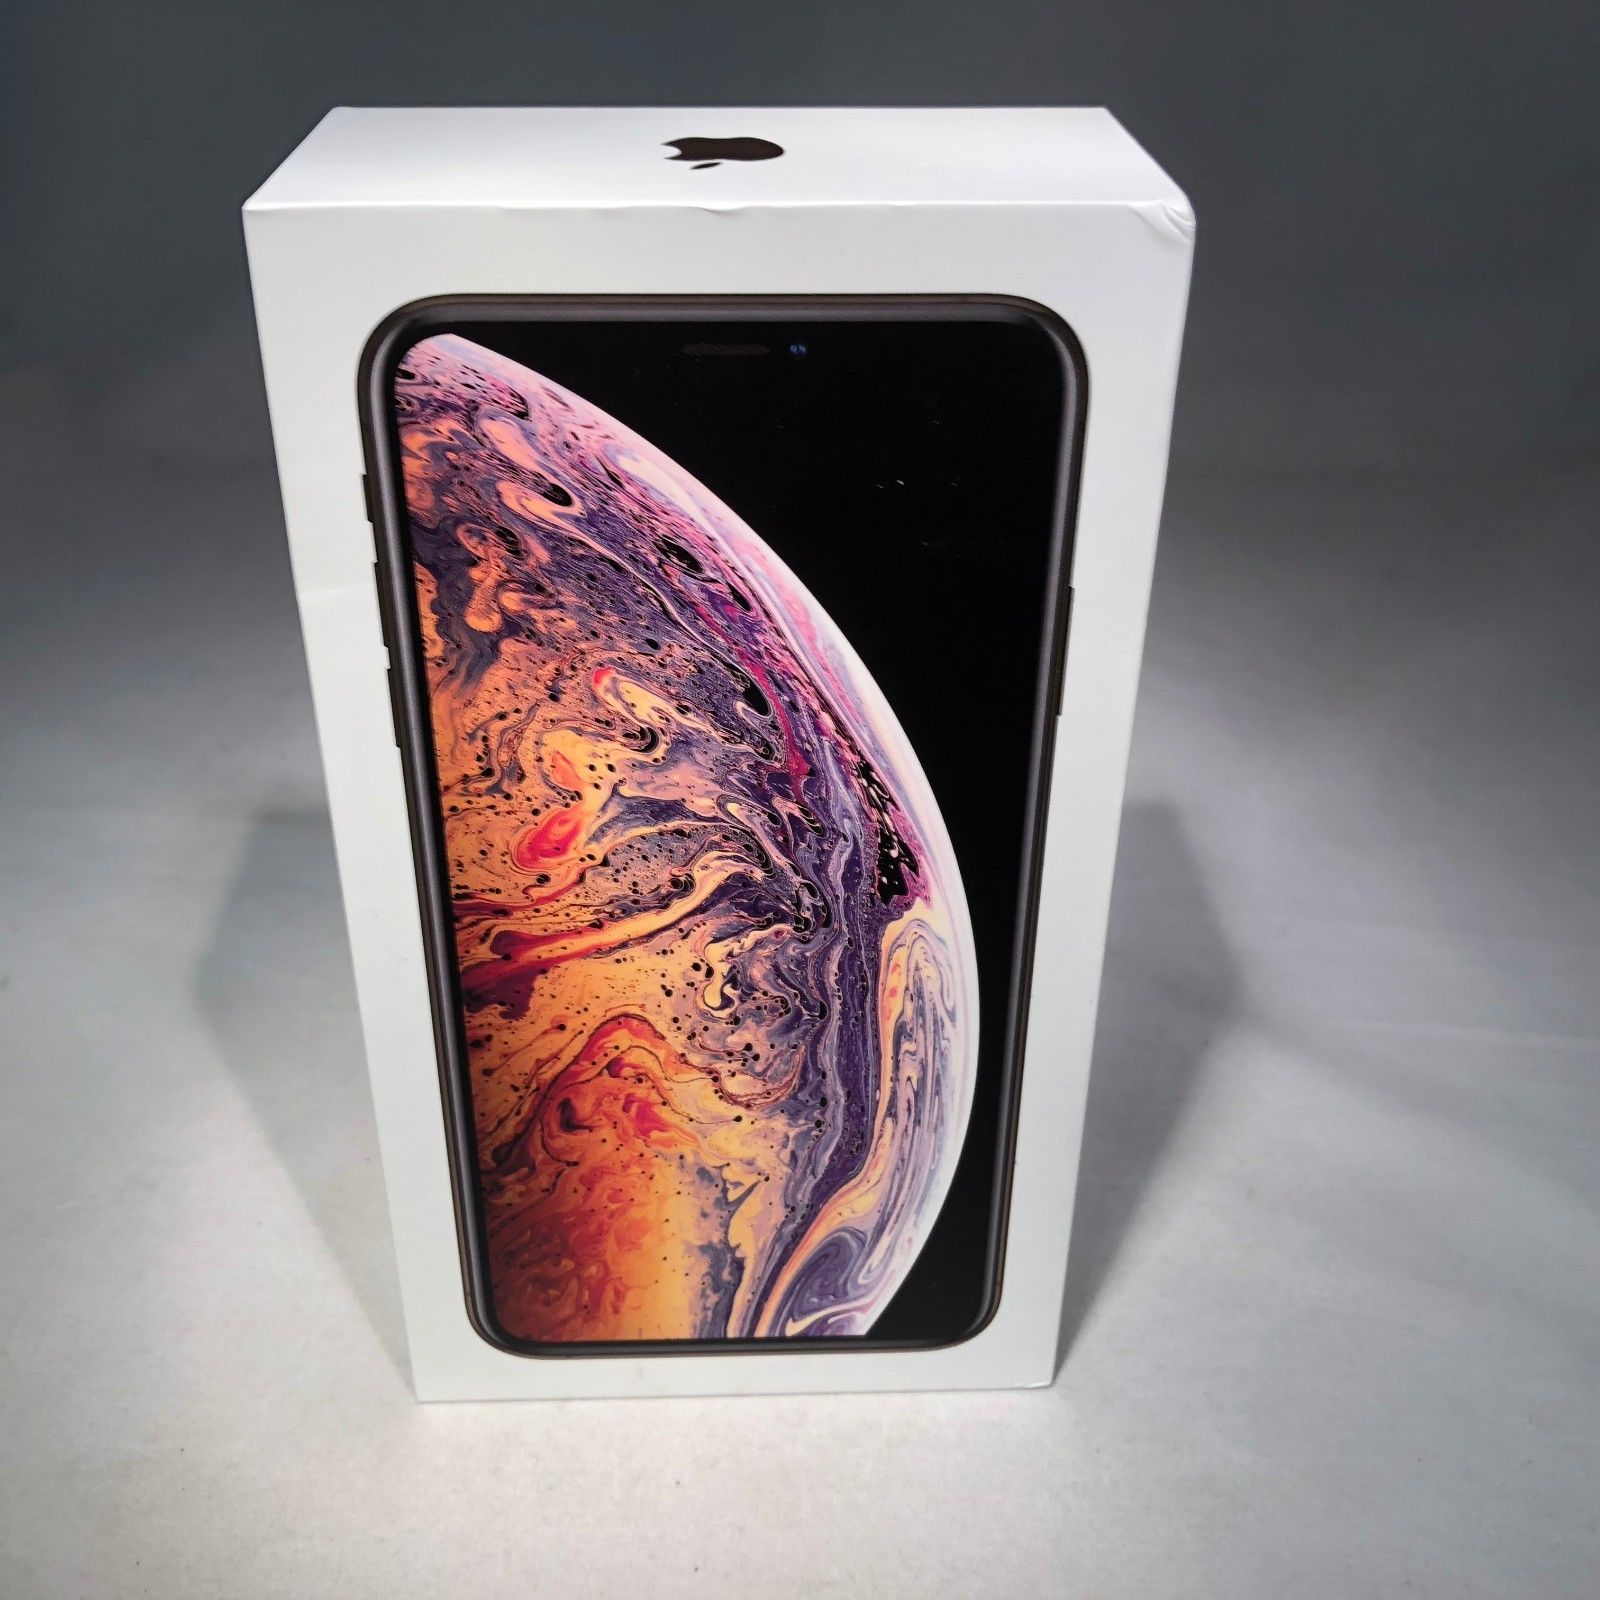 Promo sales for New Apple iPhone XR, XS, XS Max